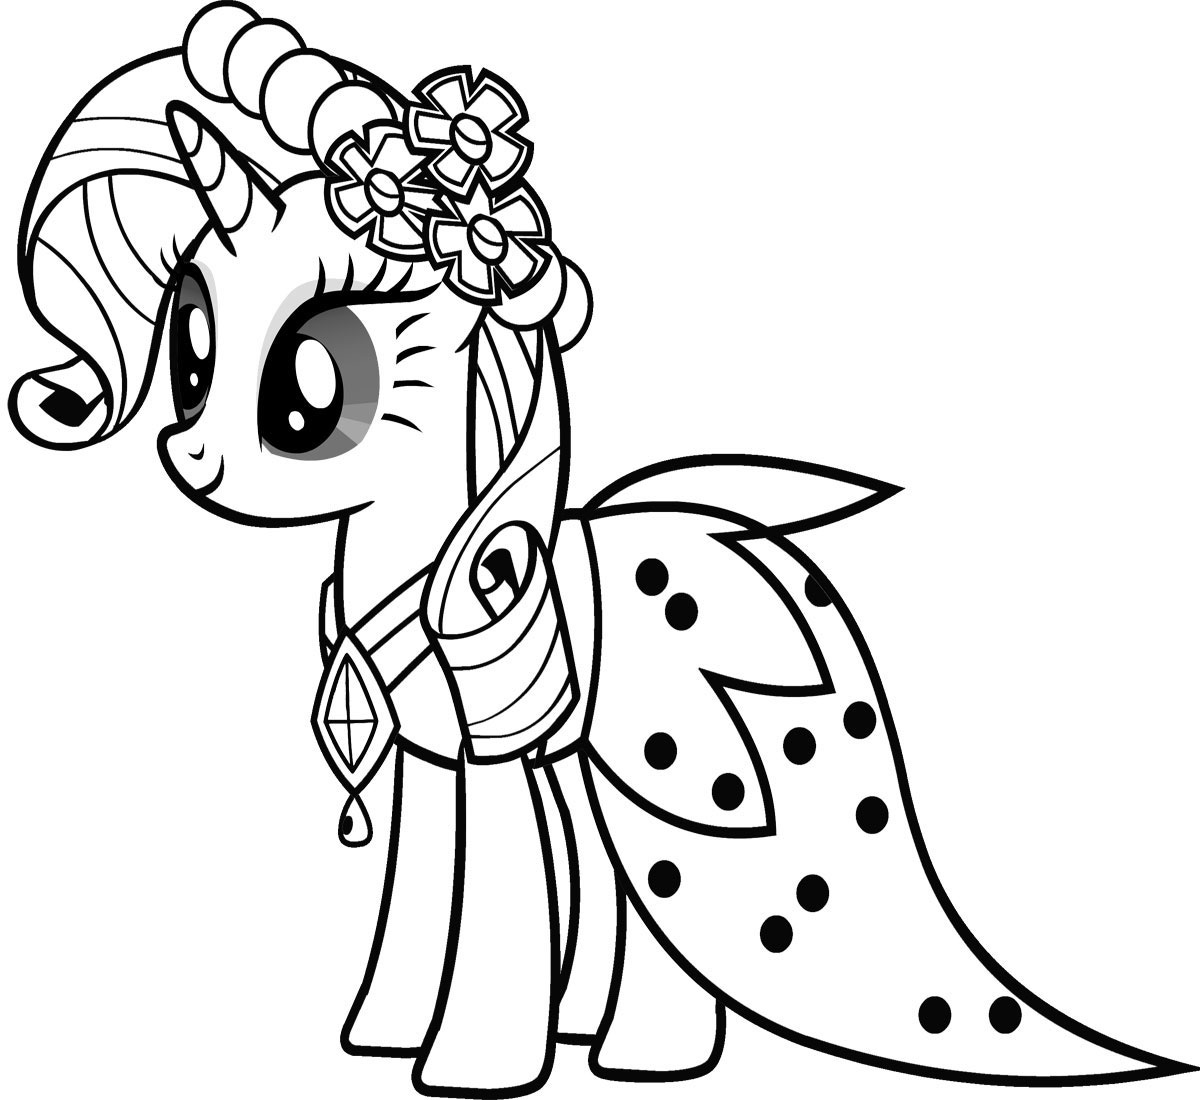 my little pony coloring pages - HD1200×1100